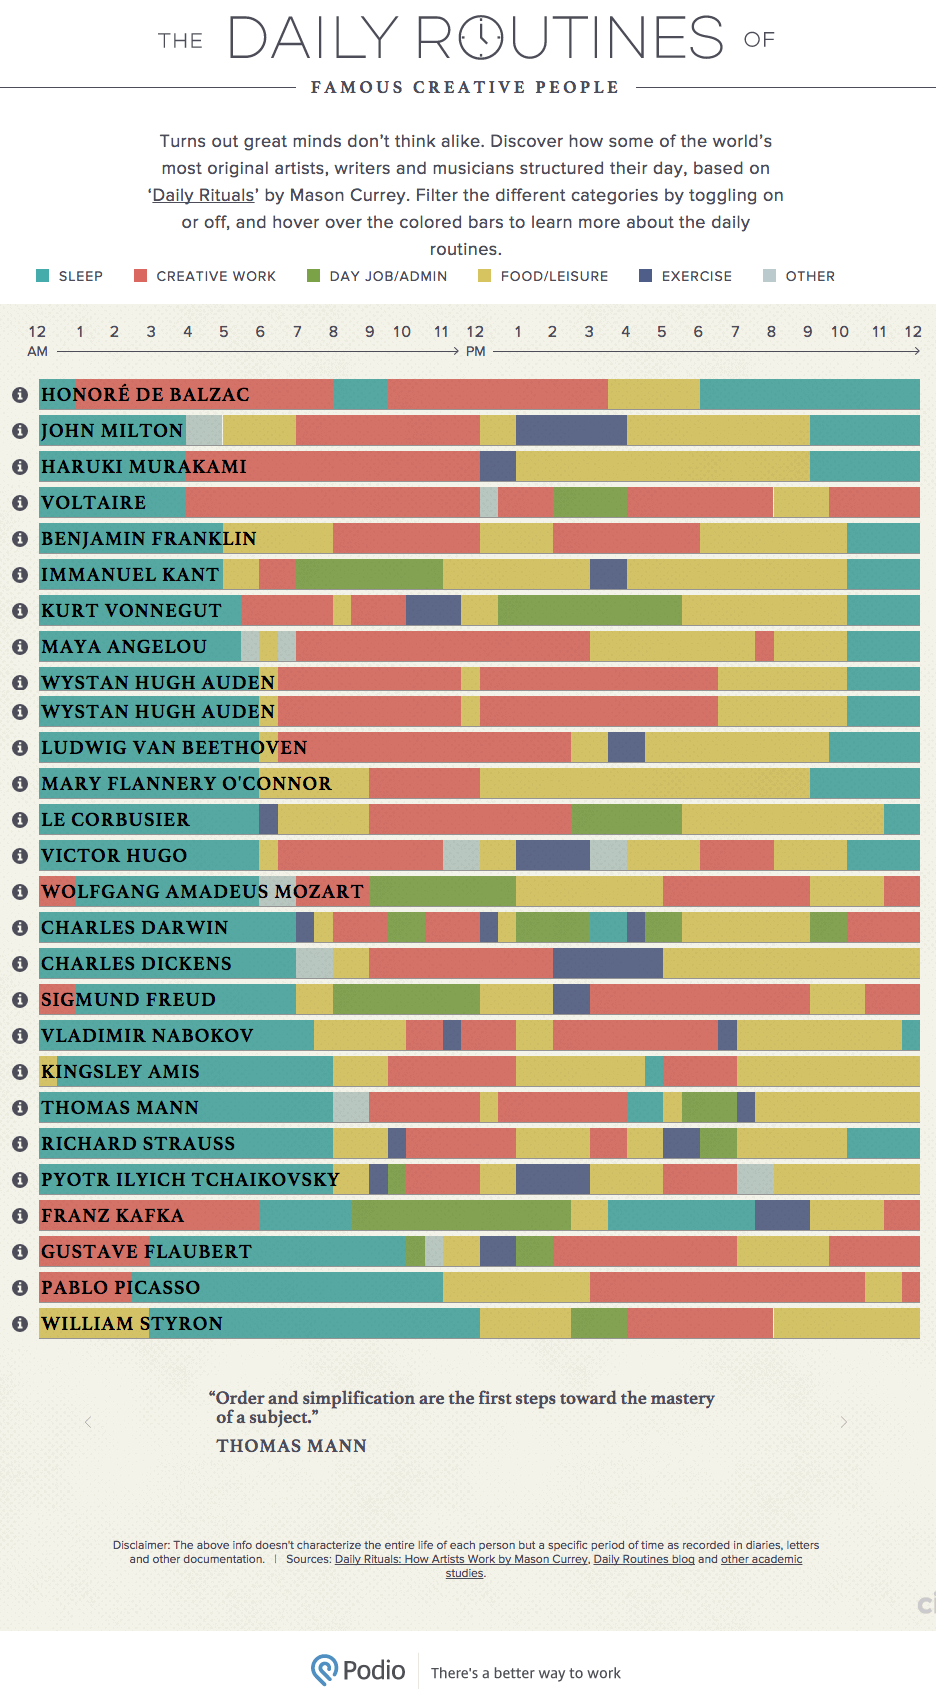 routines-of-creative-people-infographic-4241159